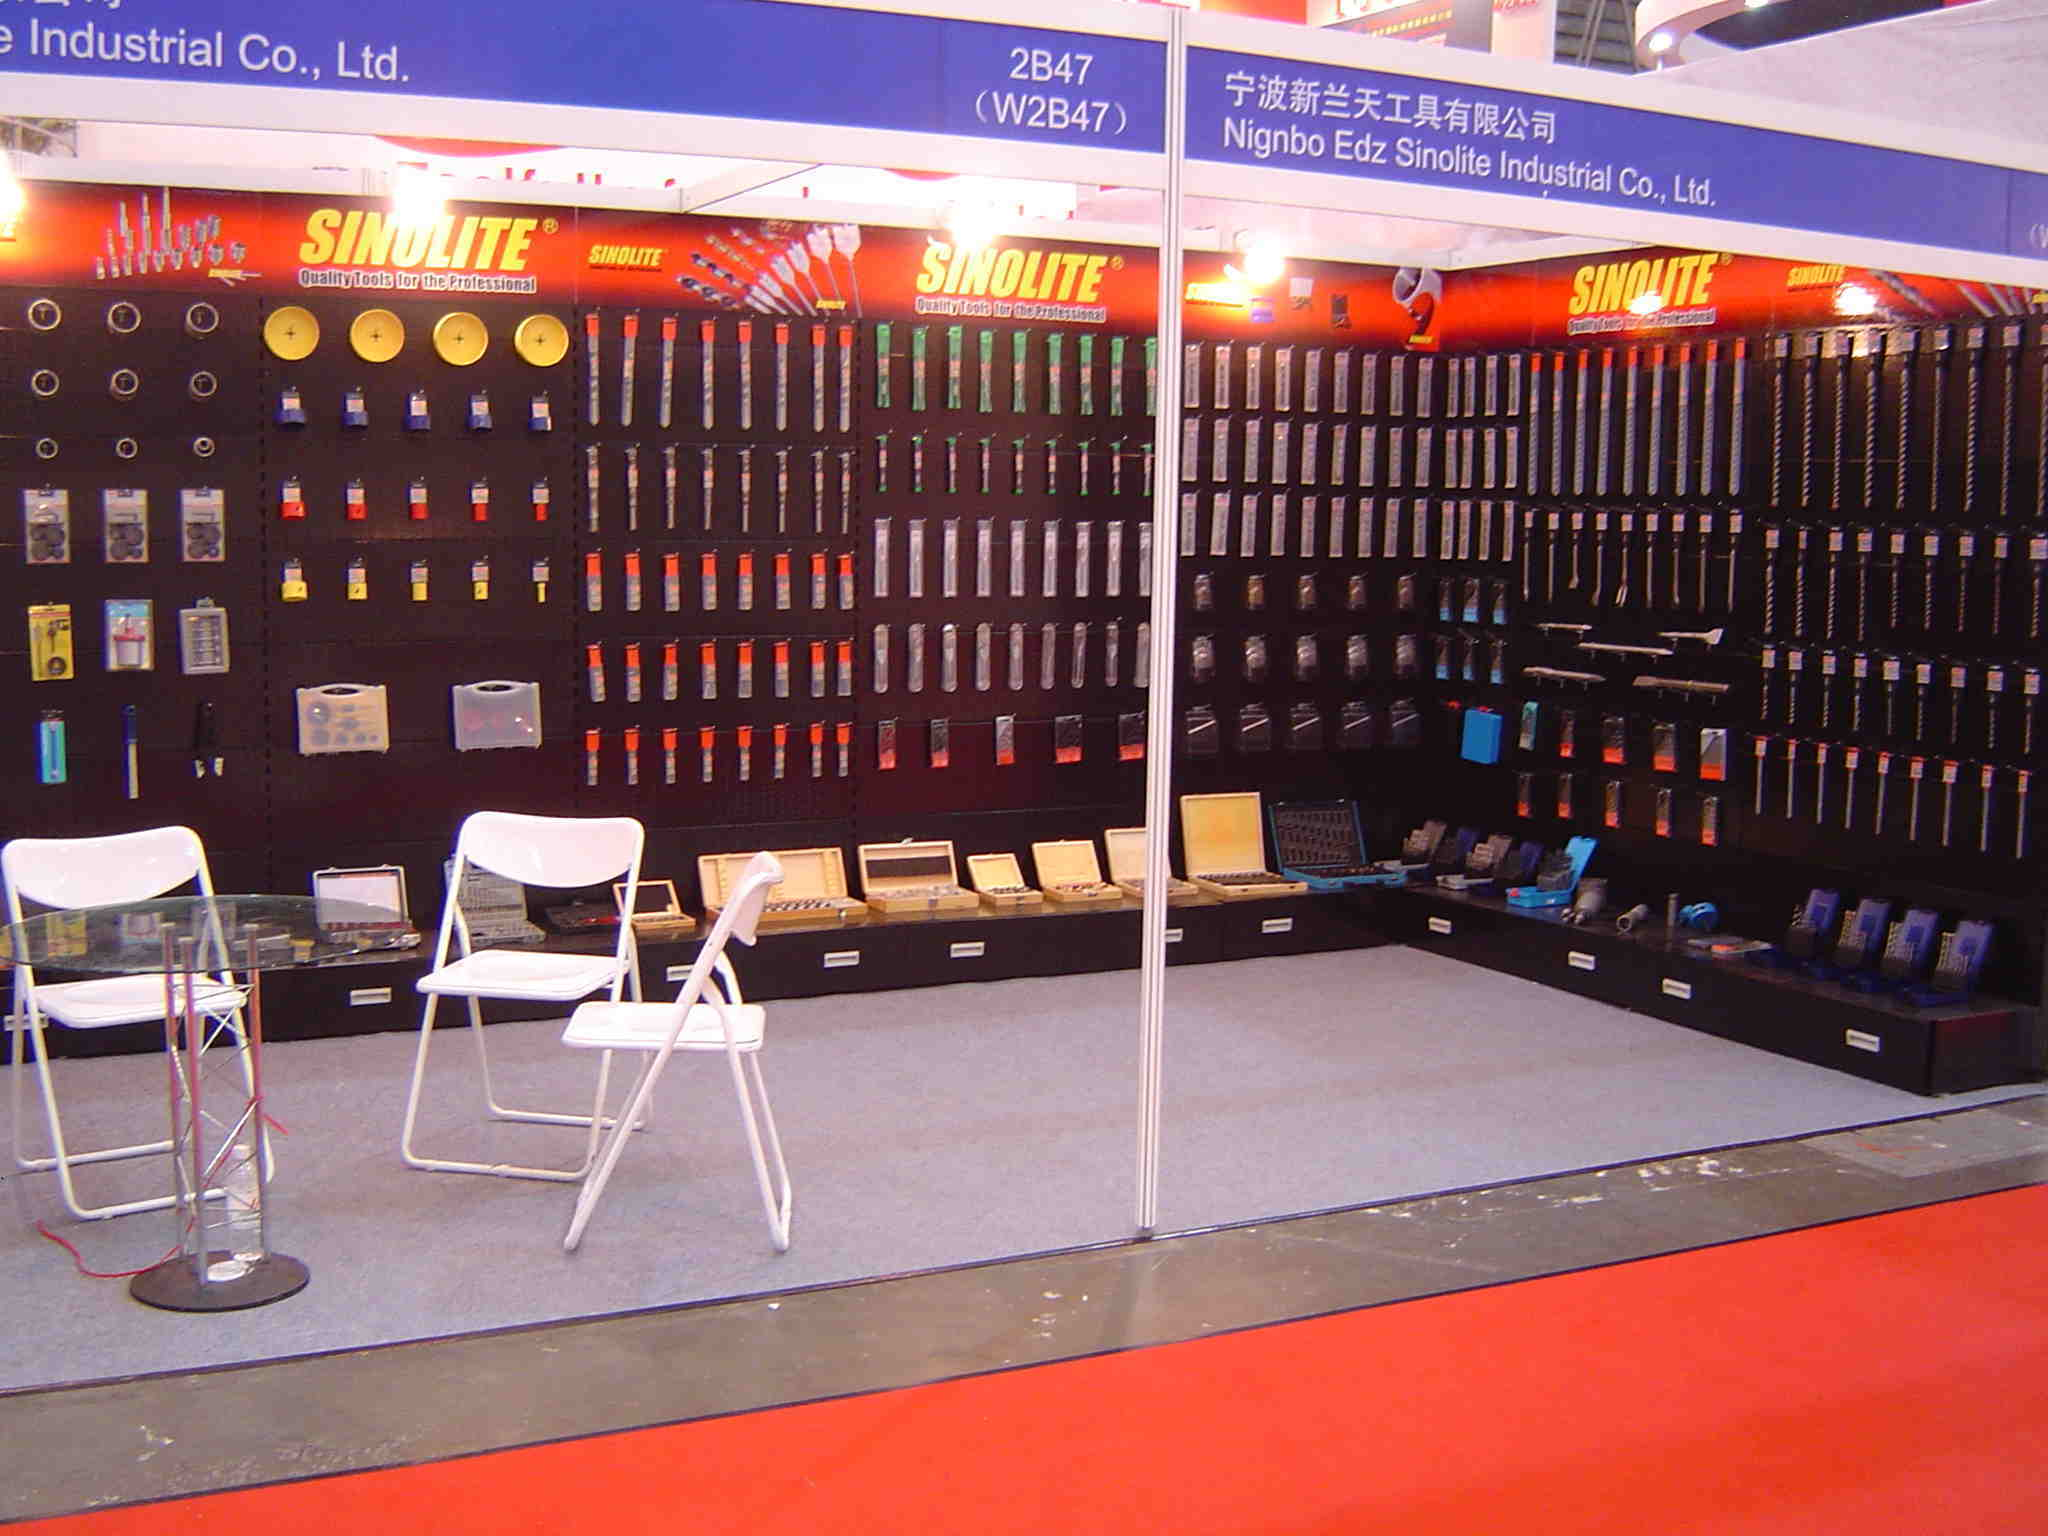 Practical World Sept 2011 Shanghai Booth Nr.B47-49 at hall W2